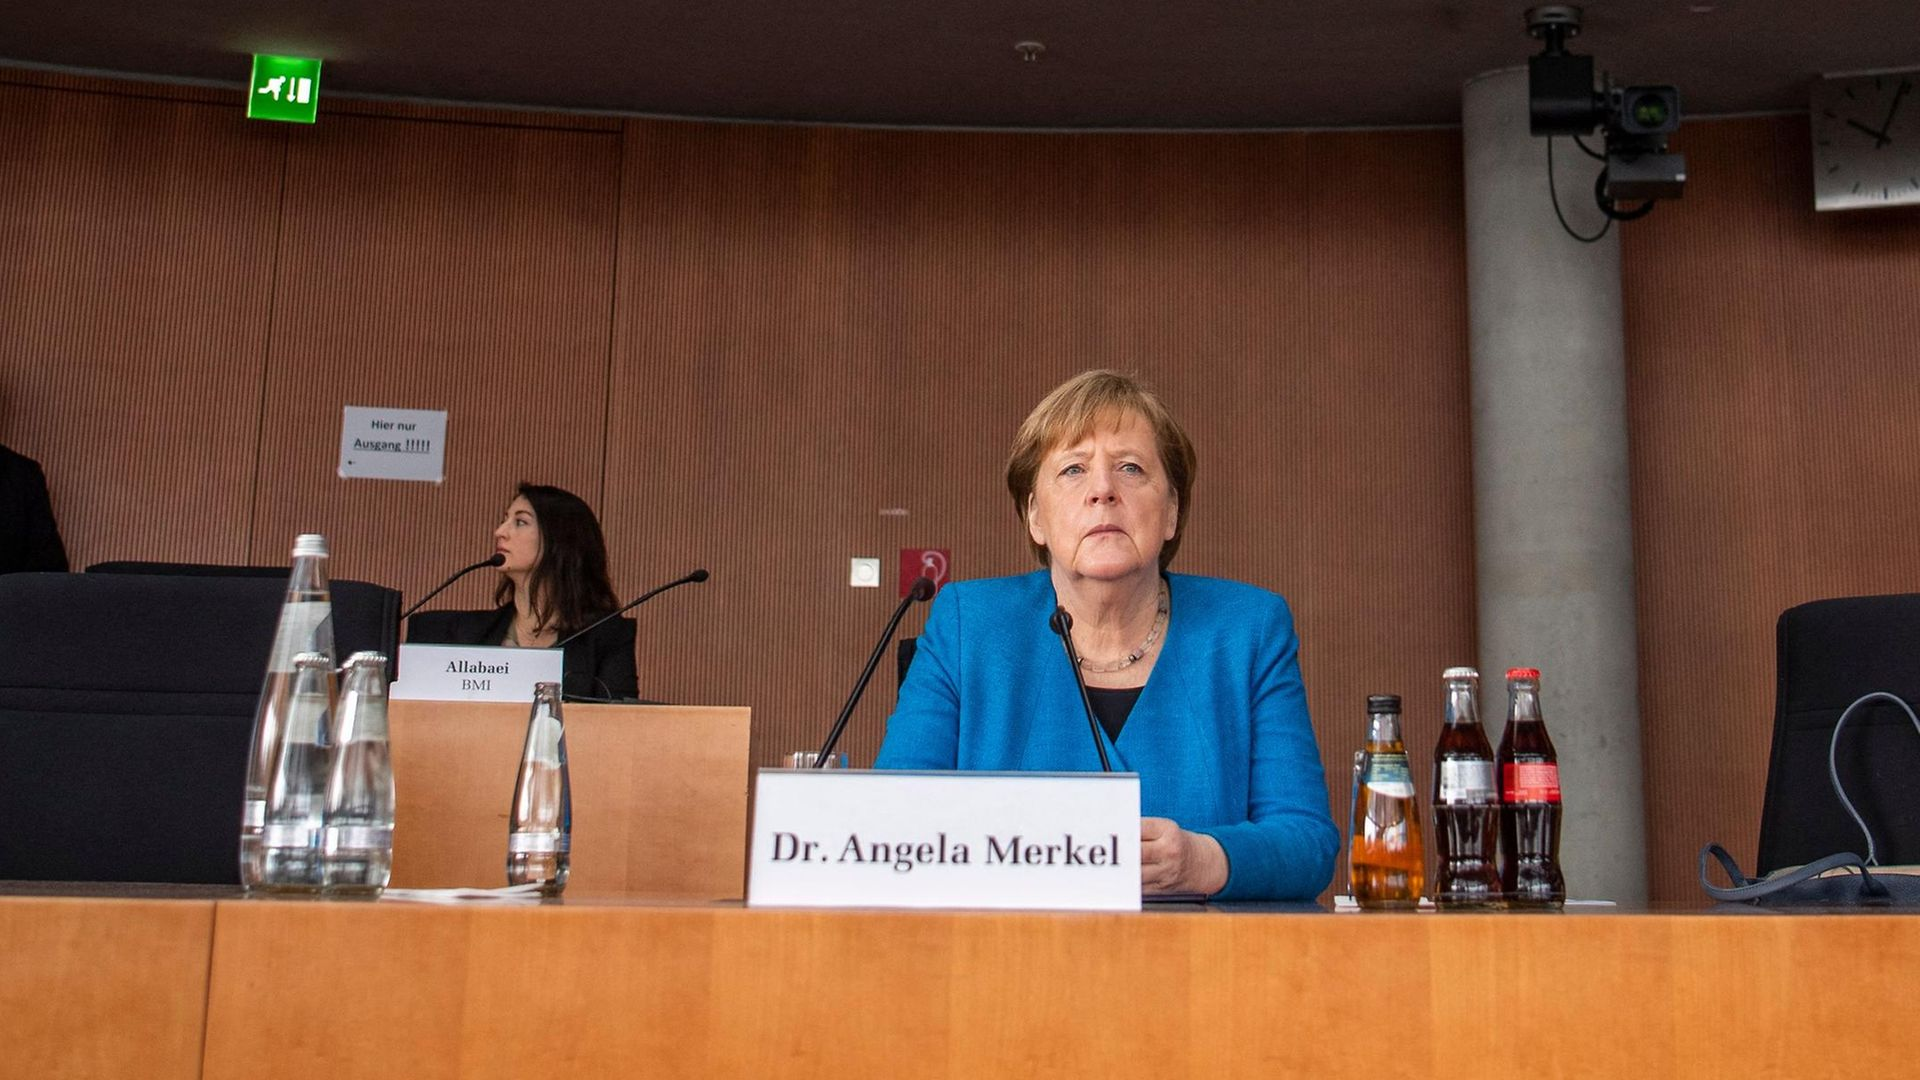 Angela Merkel giving evidence to the parliamentary committee investigating the Wirecard scandal - Credit: AFP via Getty Images